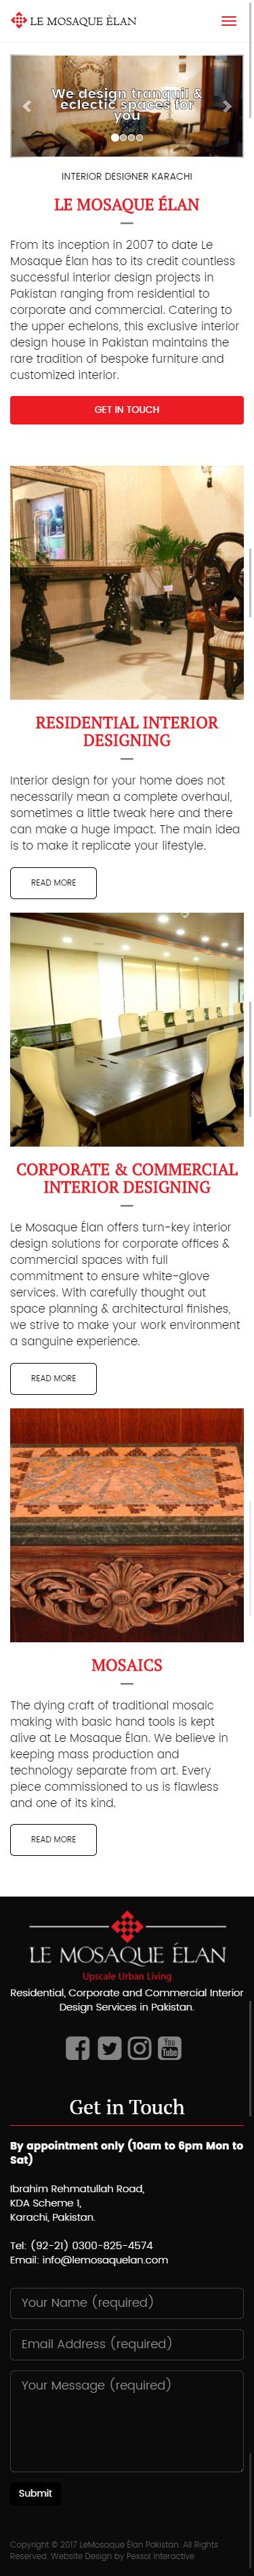 Le Mosaque Élan Website Mobile Mockup 1